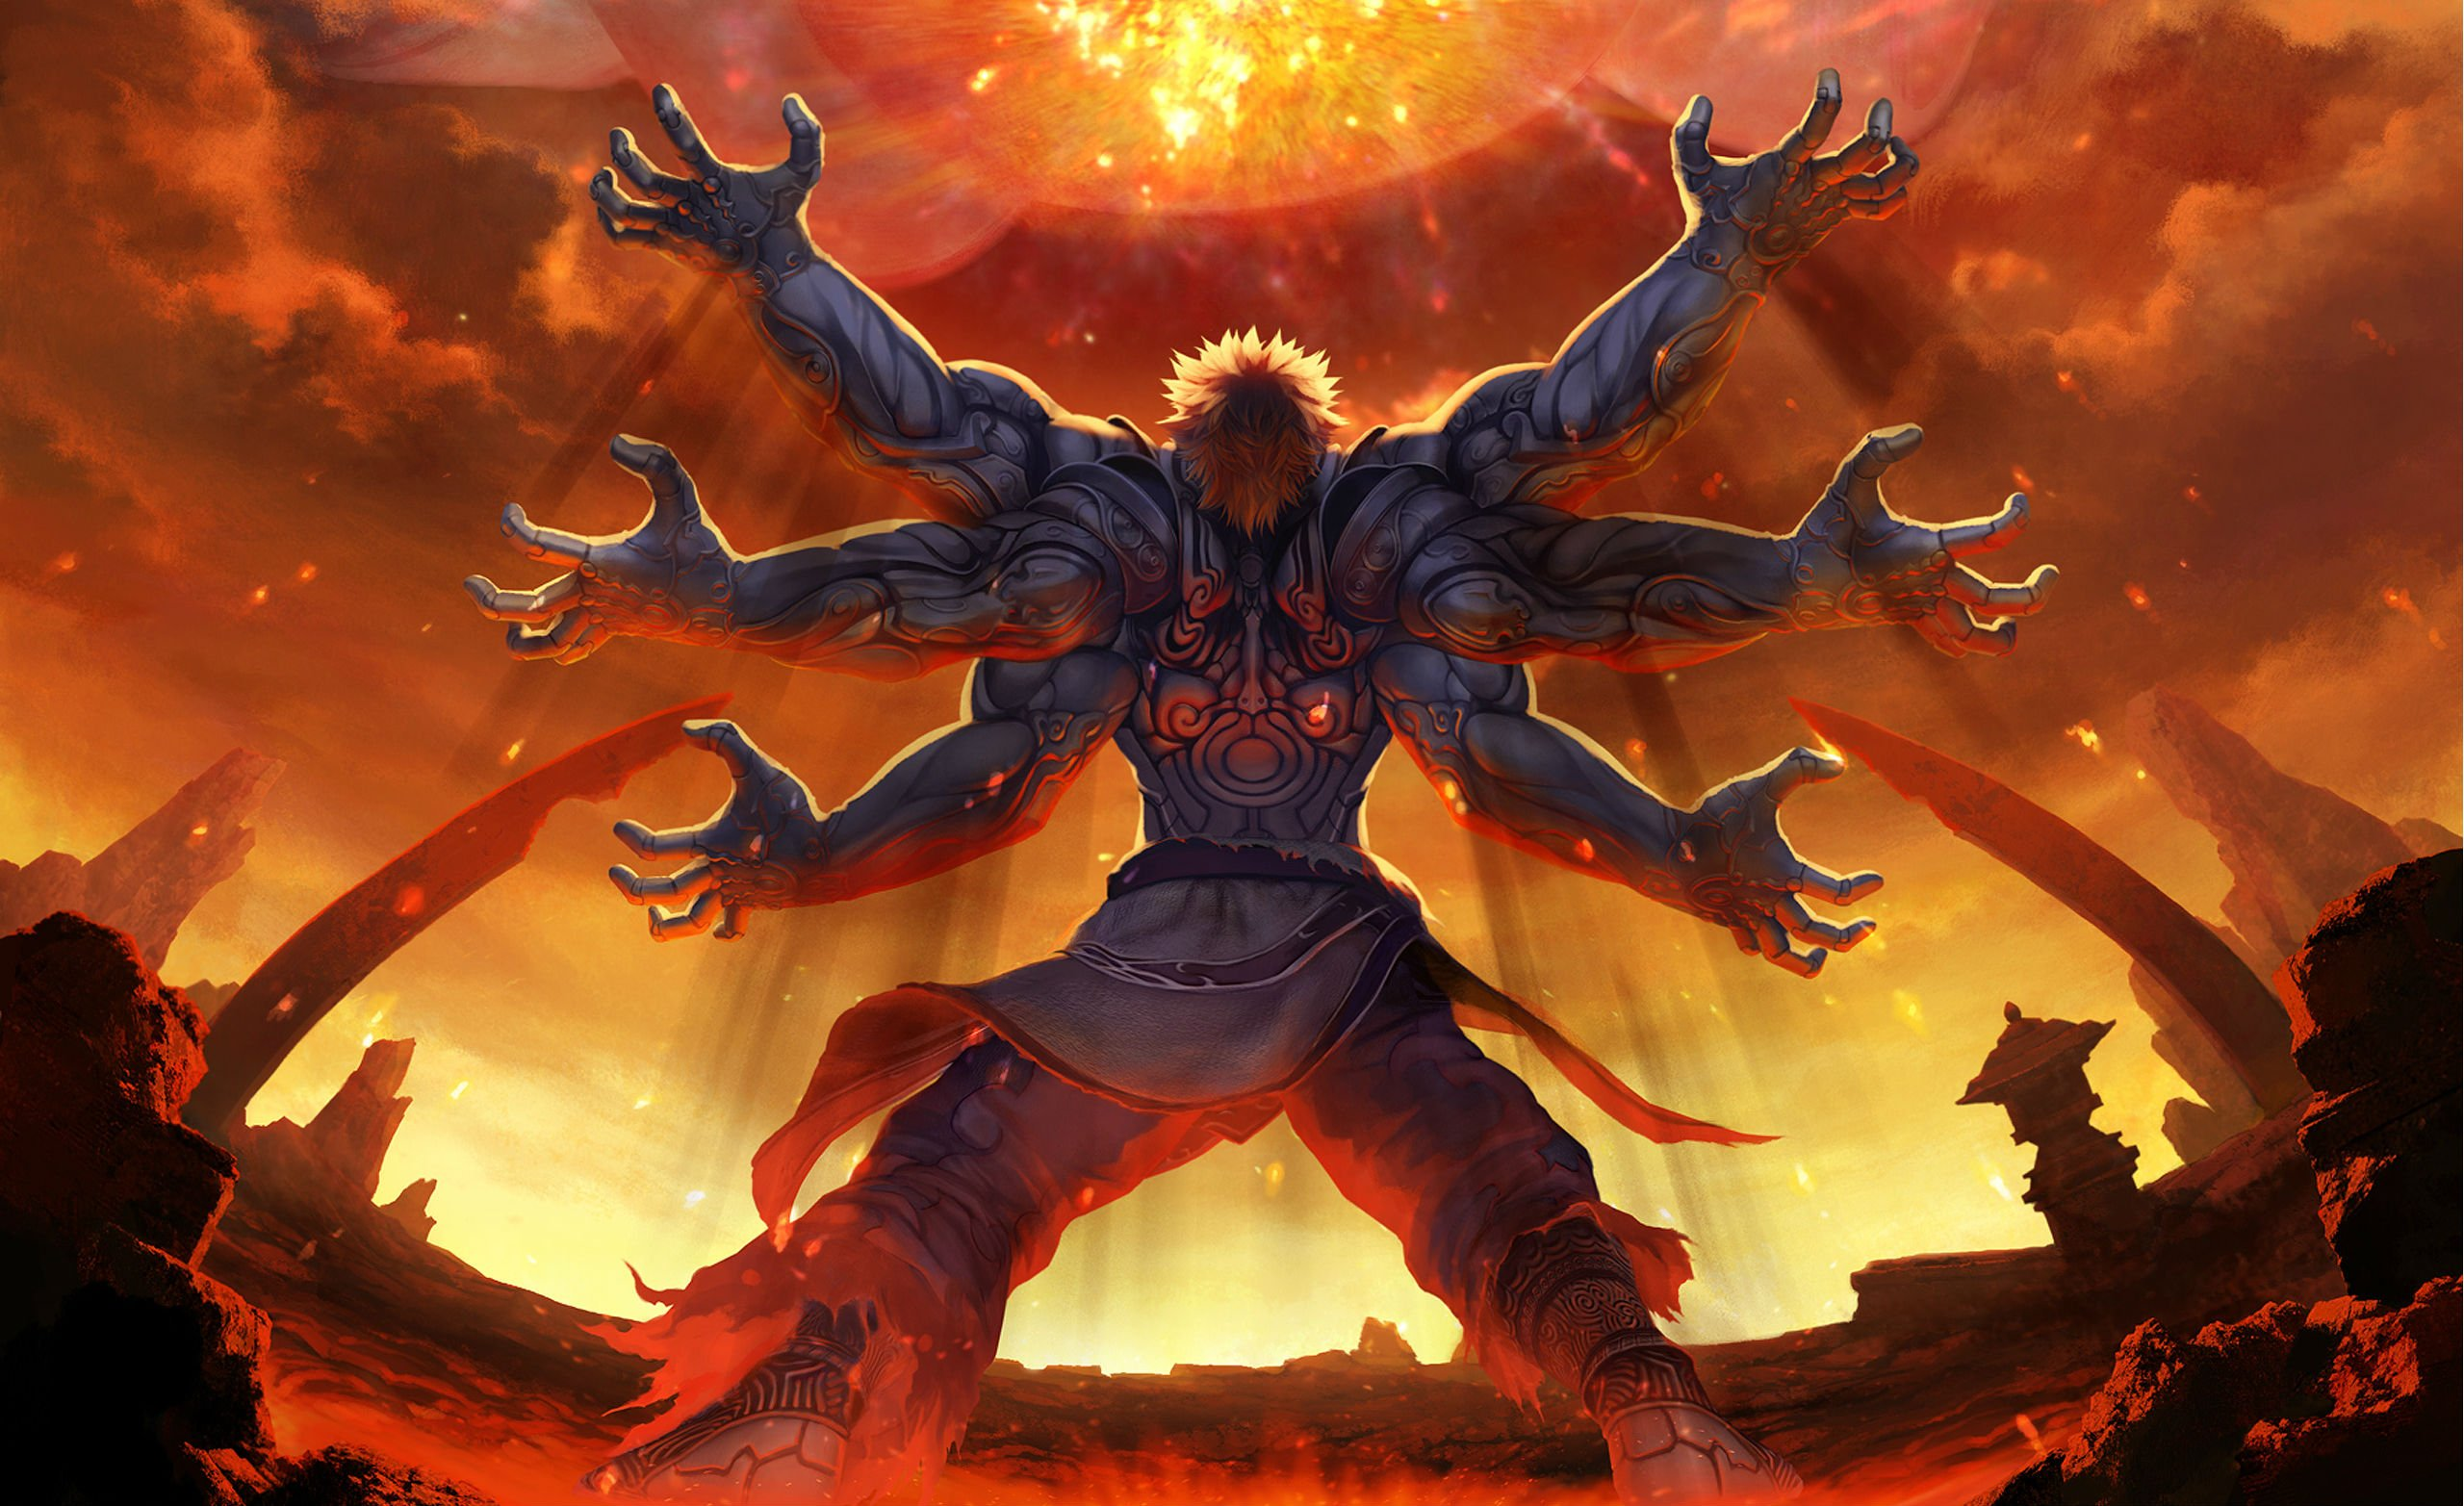 Why (not) Famous - Asura's Wrath